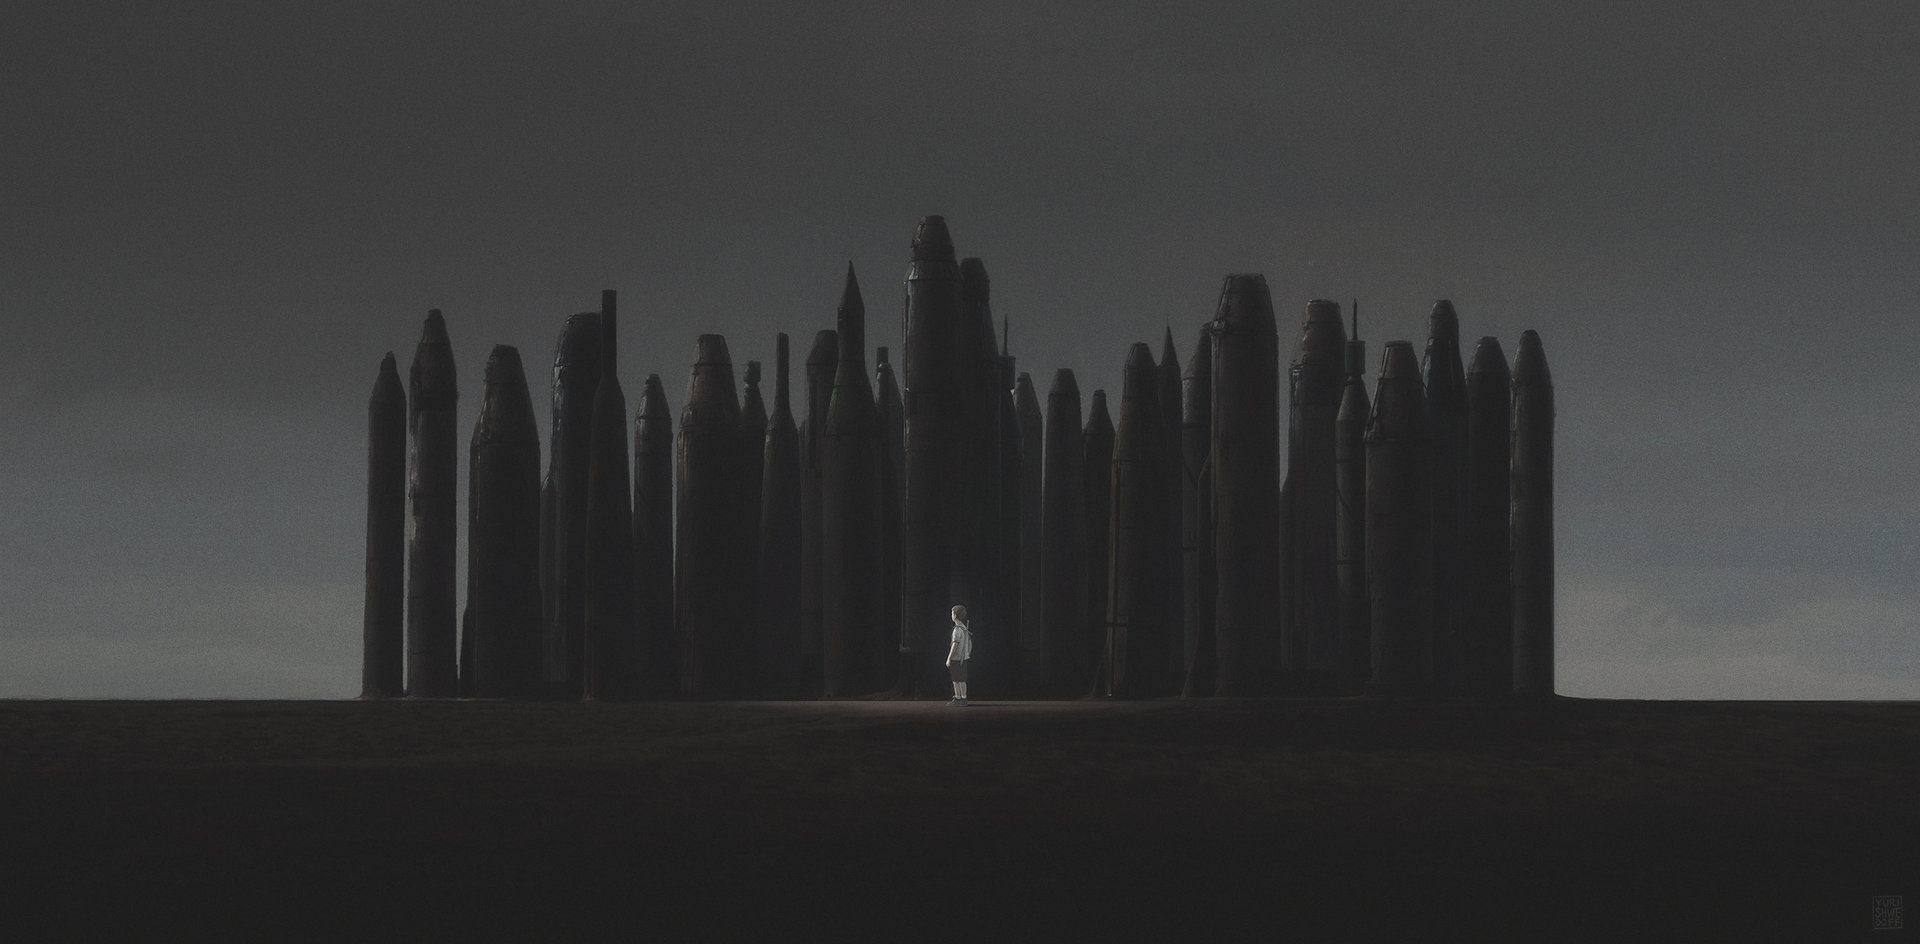 [Reflexion] Les oeuvres qui vous inspirent - Page 2 Yuri-shwedoff-idolsinternet3